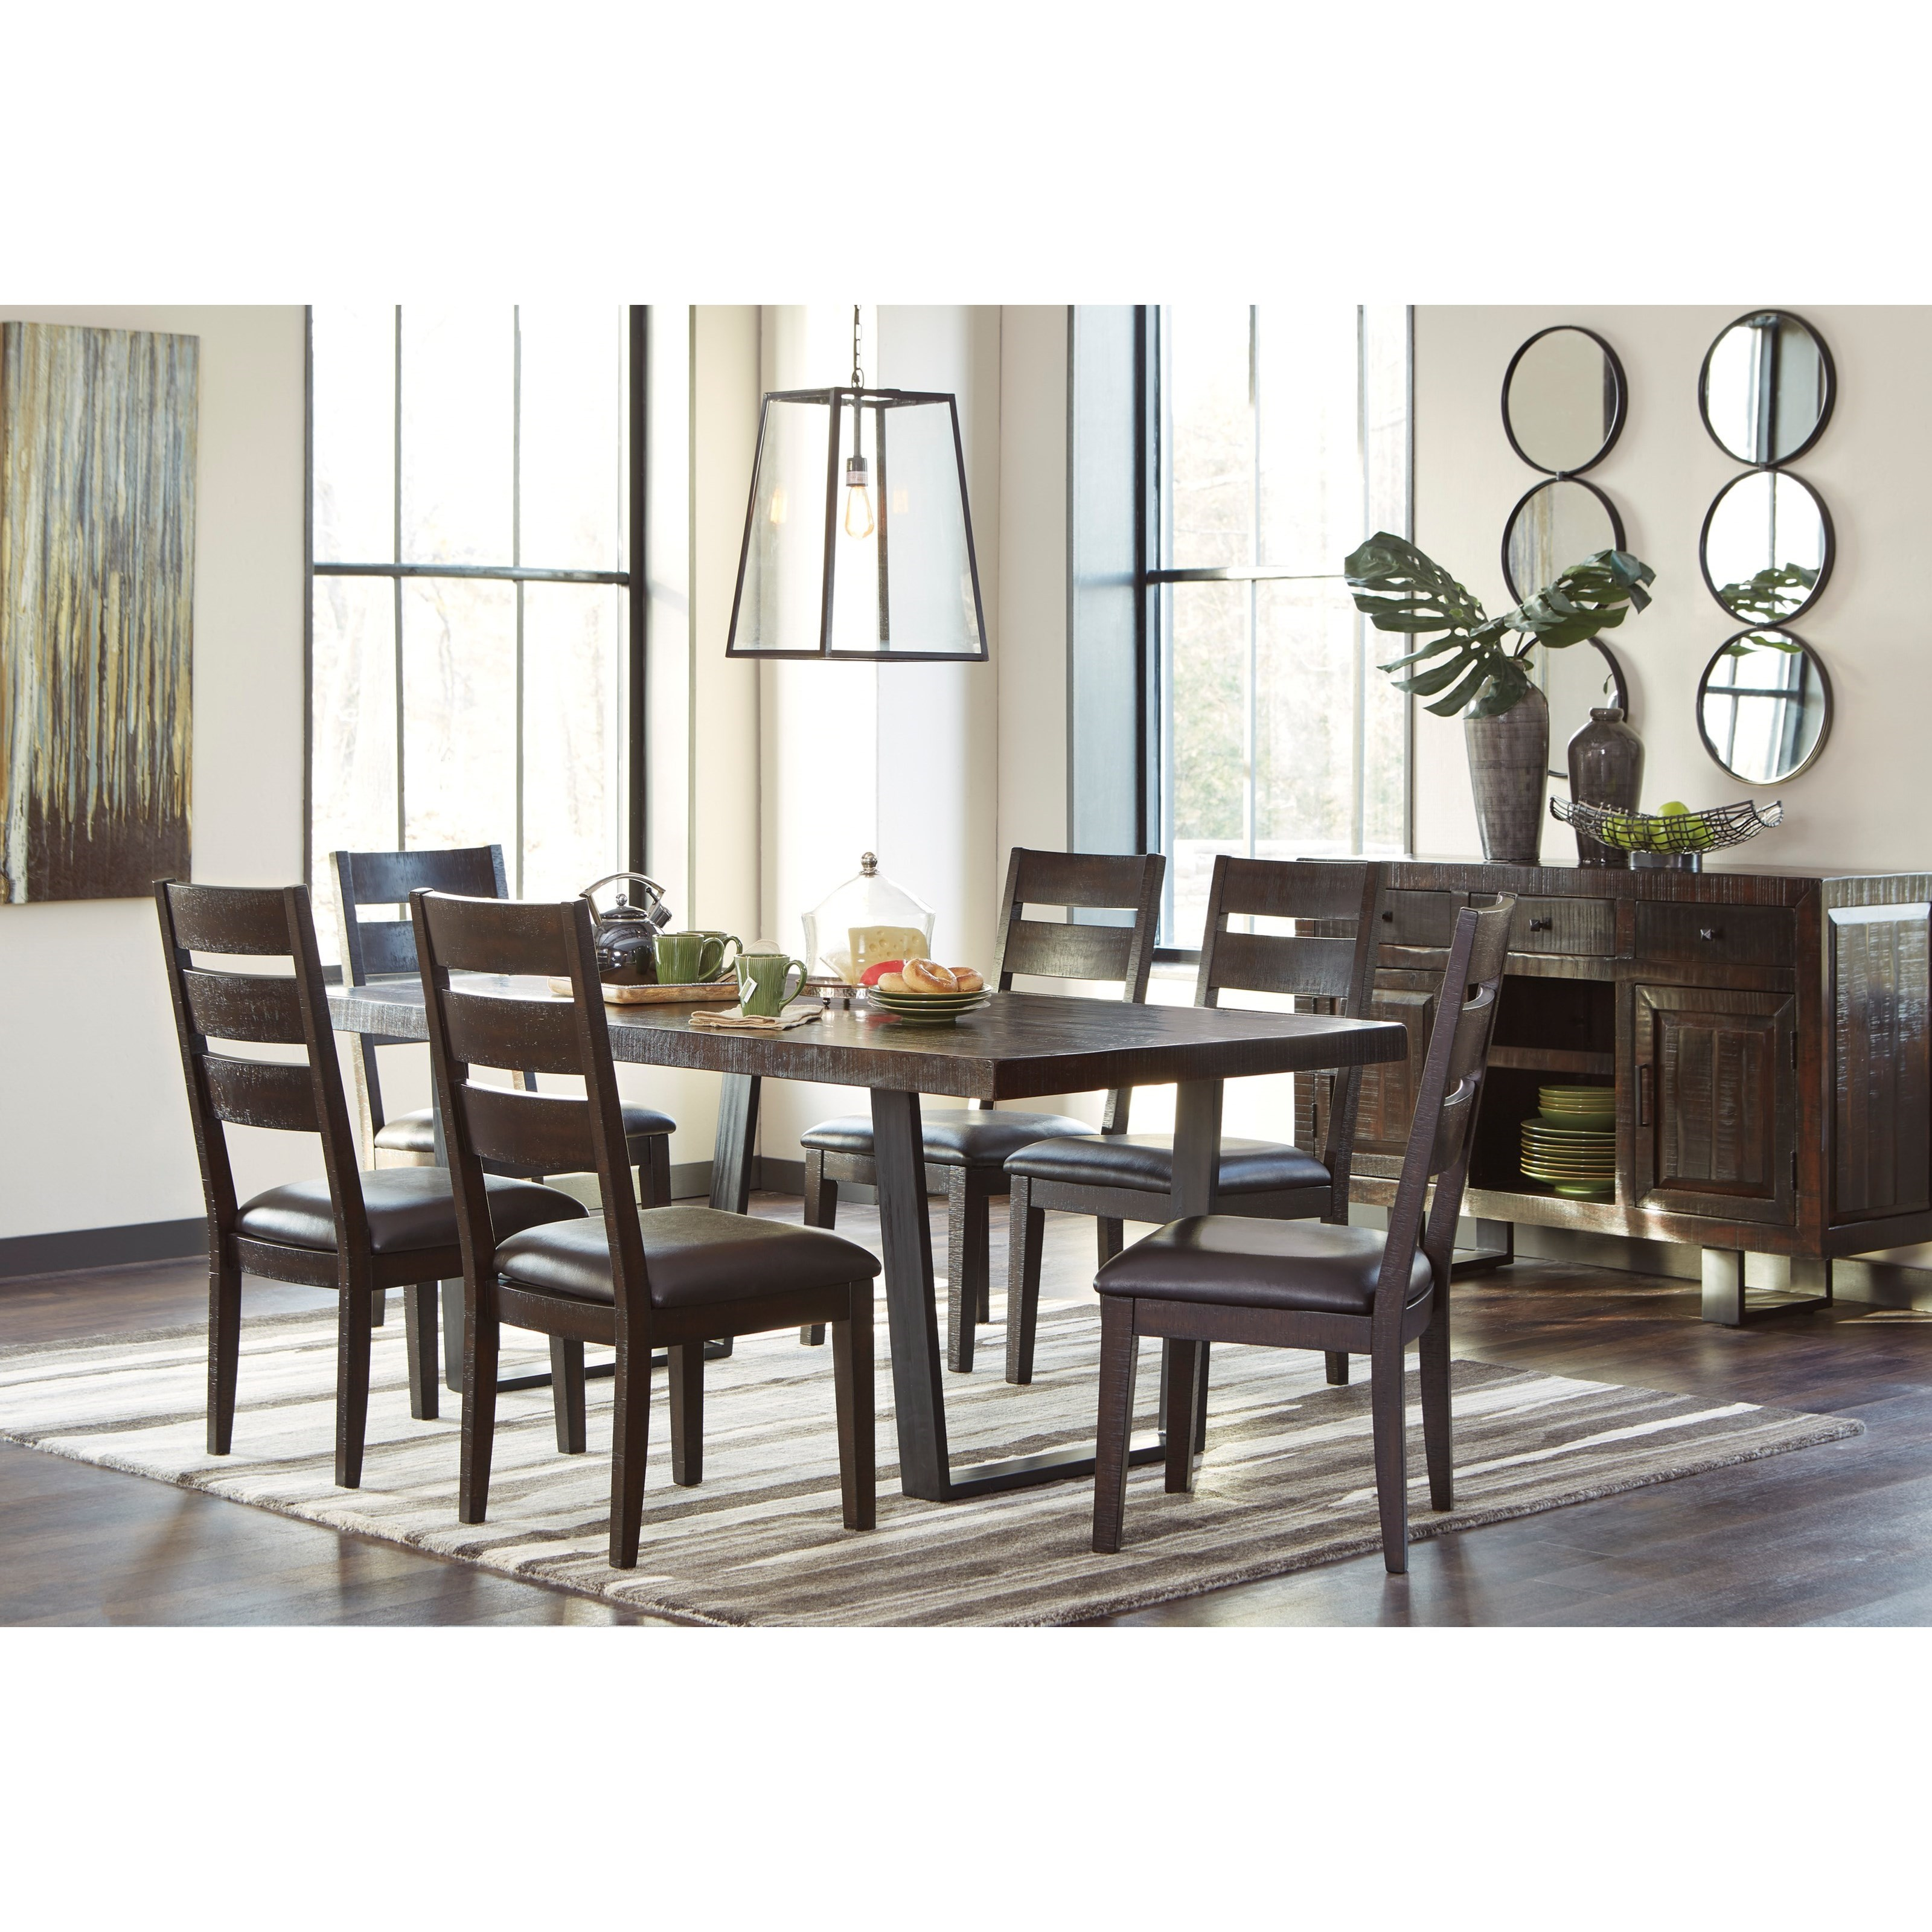 Signature design by ashley parlone 7 piece rectangular for 13 piece dining table set